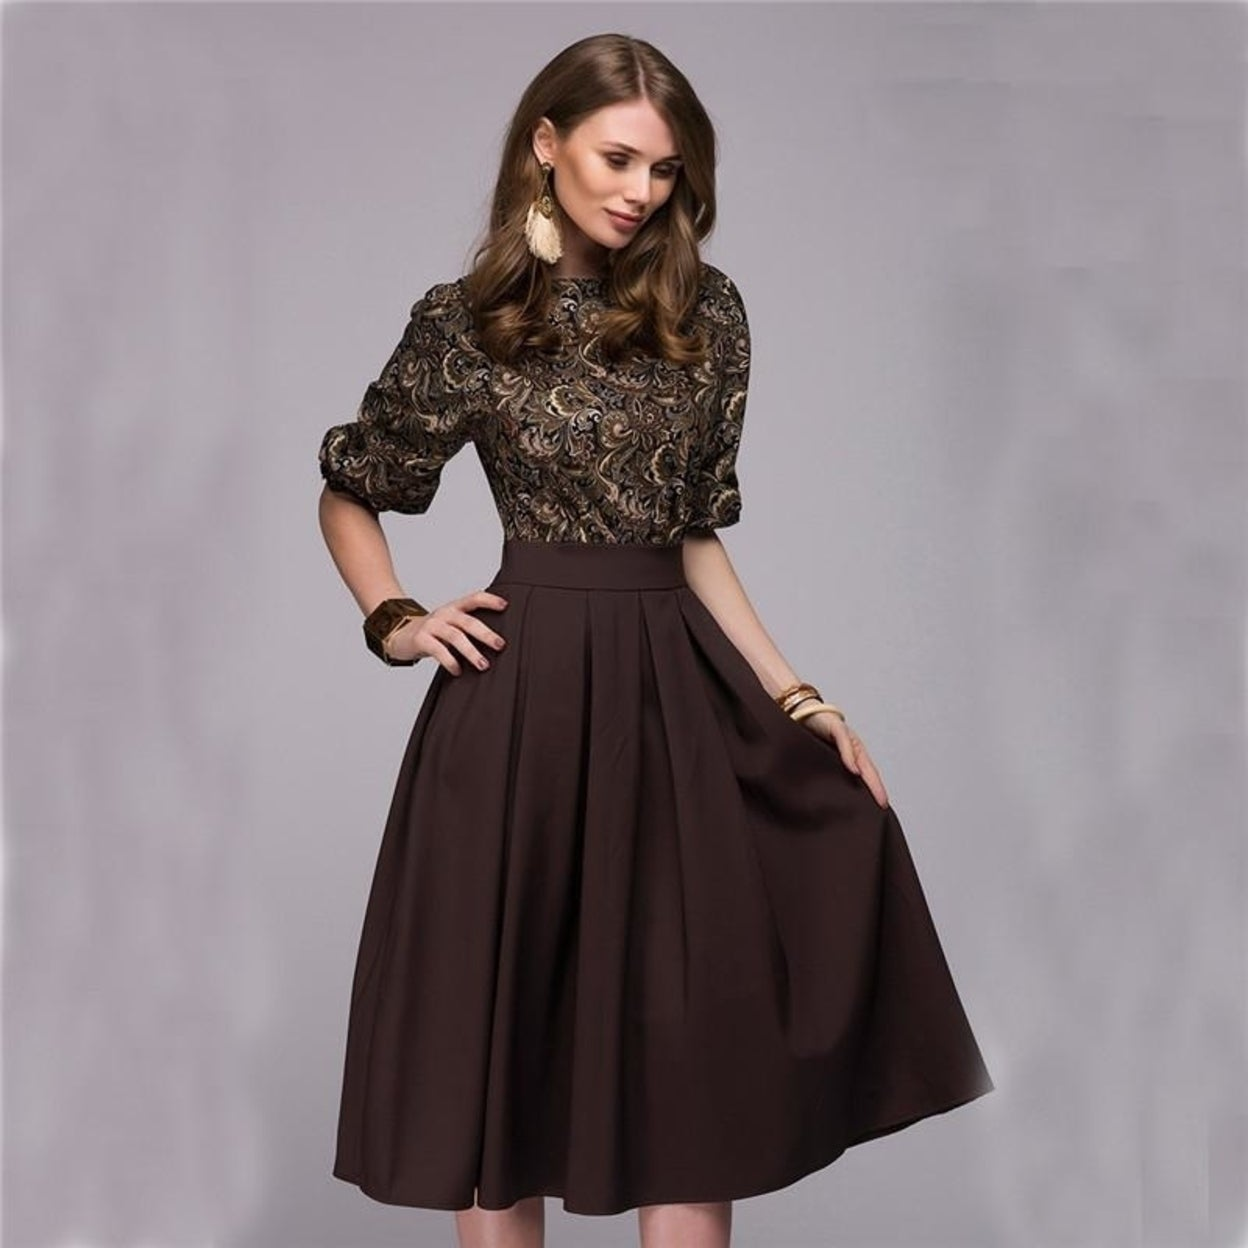 d2515345359 shop fall fashion women floral printed party dresses autumn christmas  casual elegant prom midi dress plus